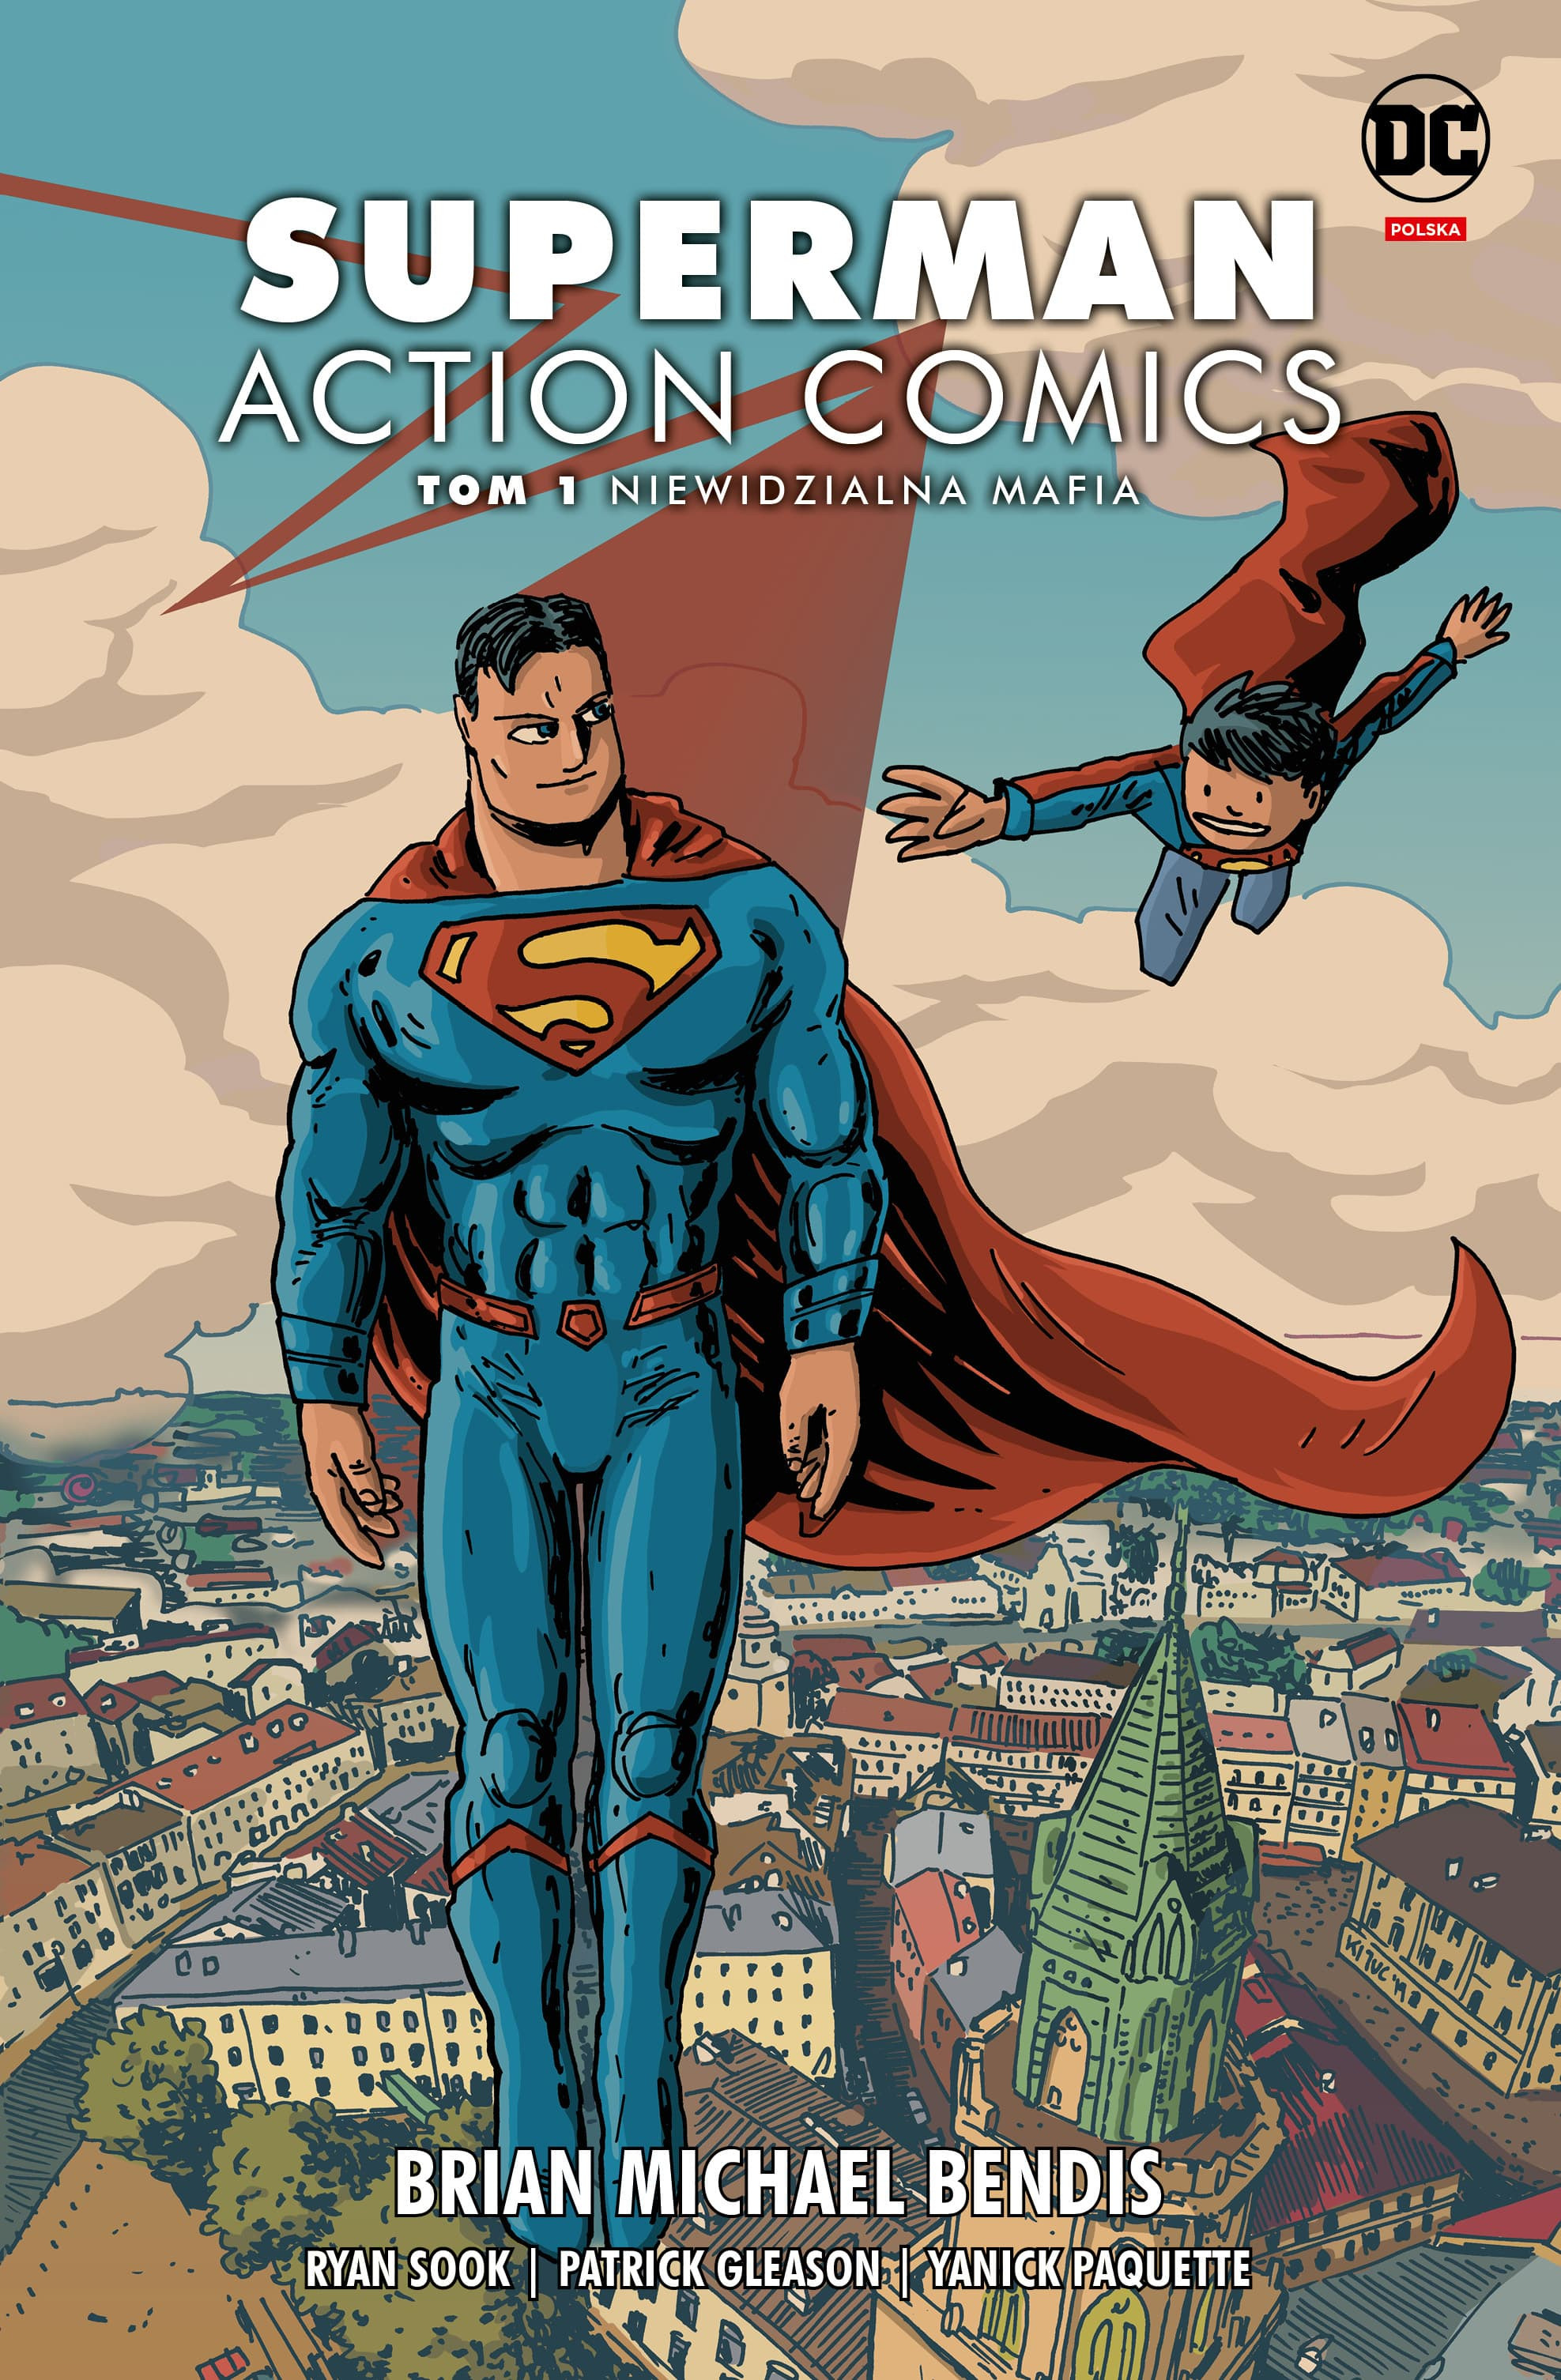 cover_Superman Action Comics_Vol. 01_PL Superman in Lublin_Kijuc-min.jpg